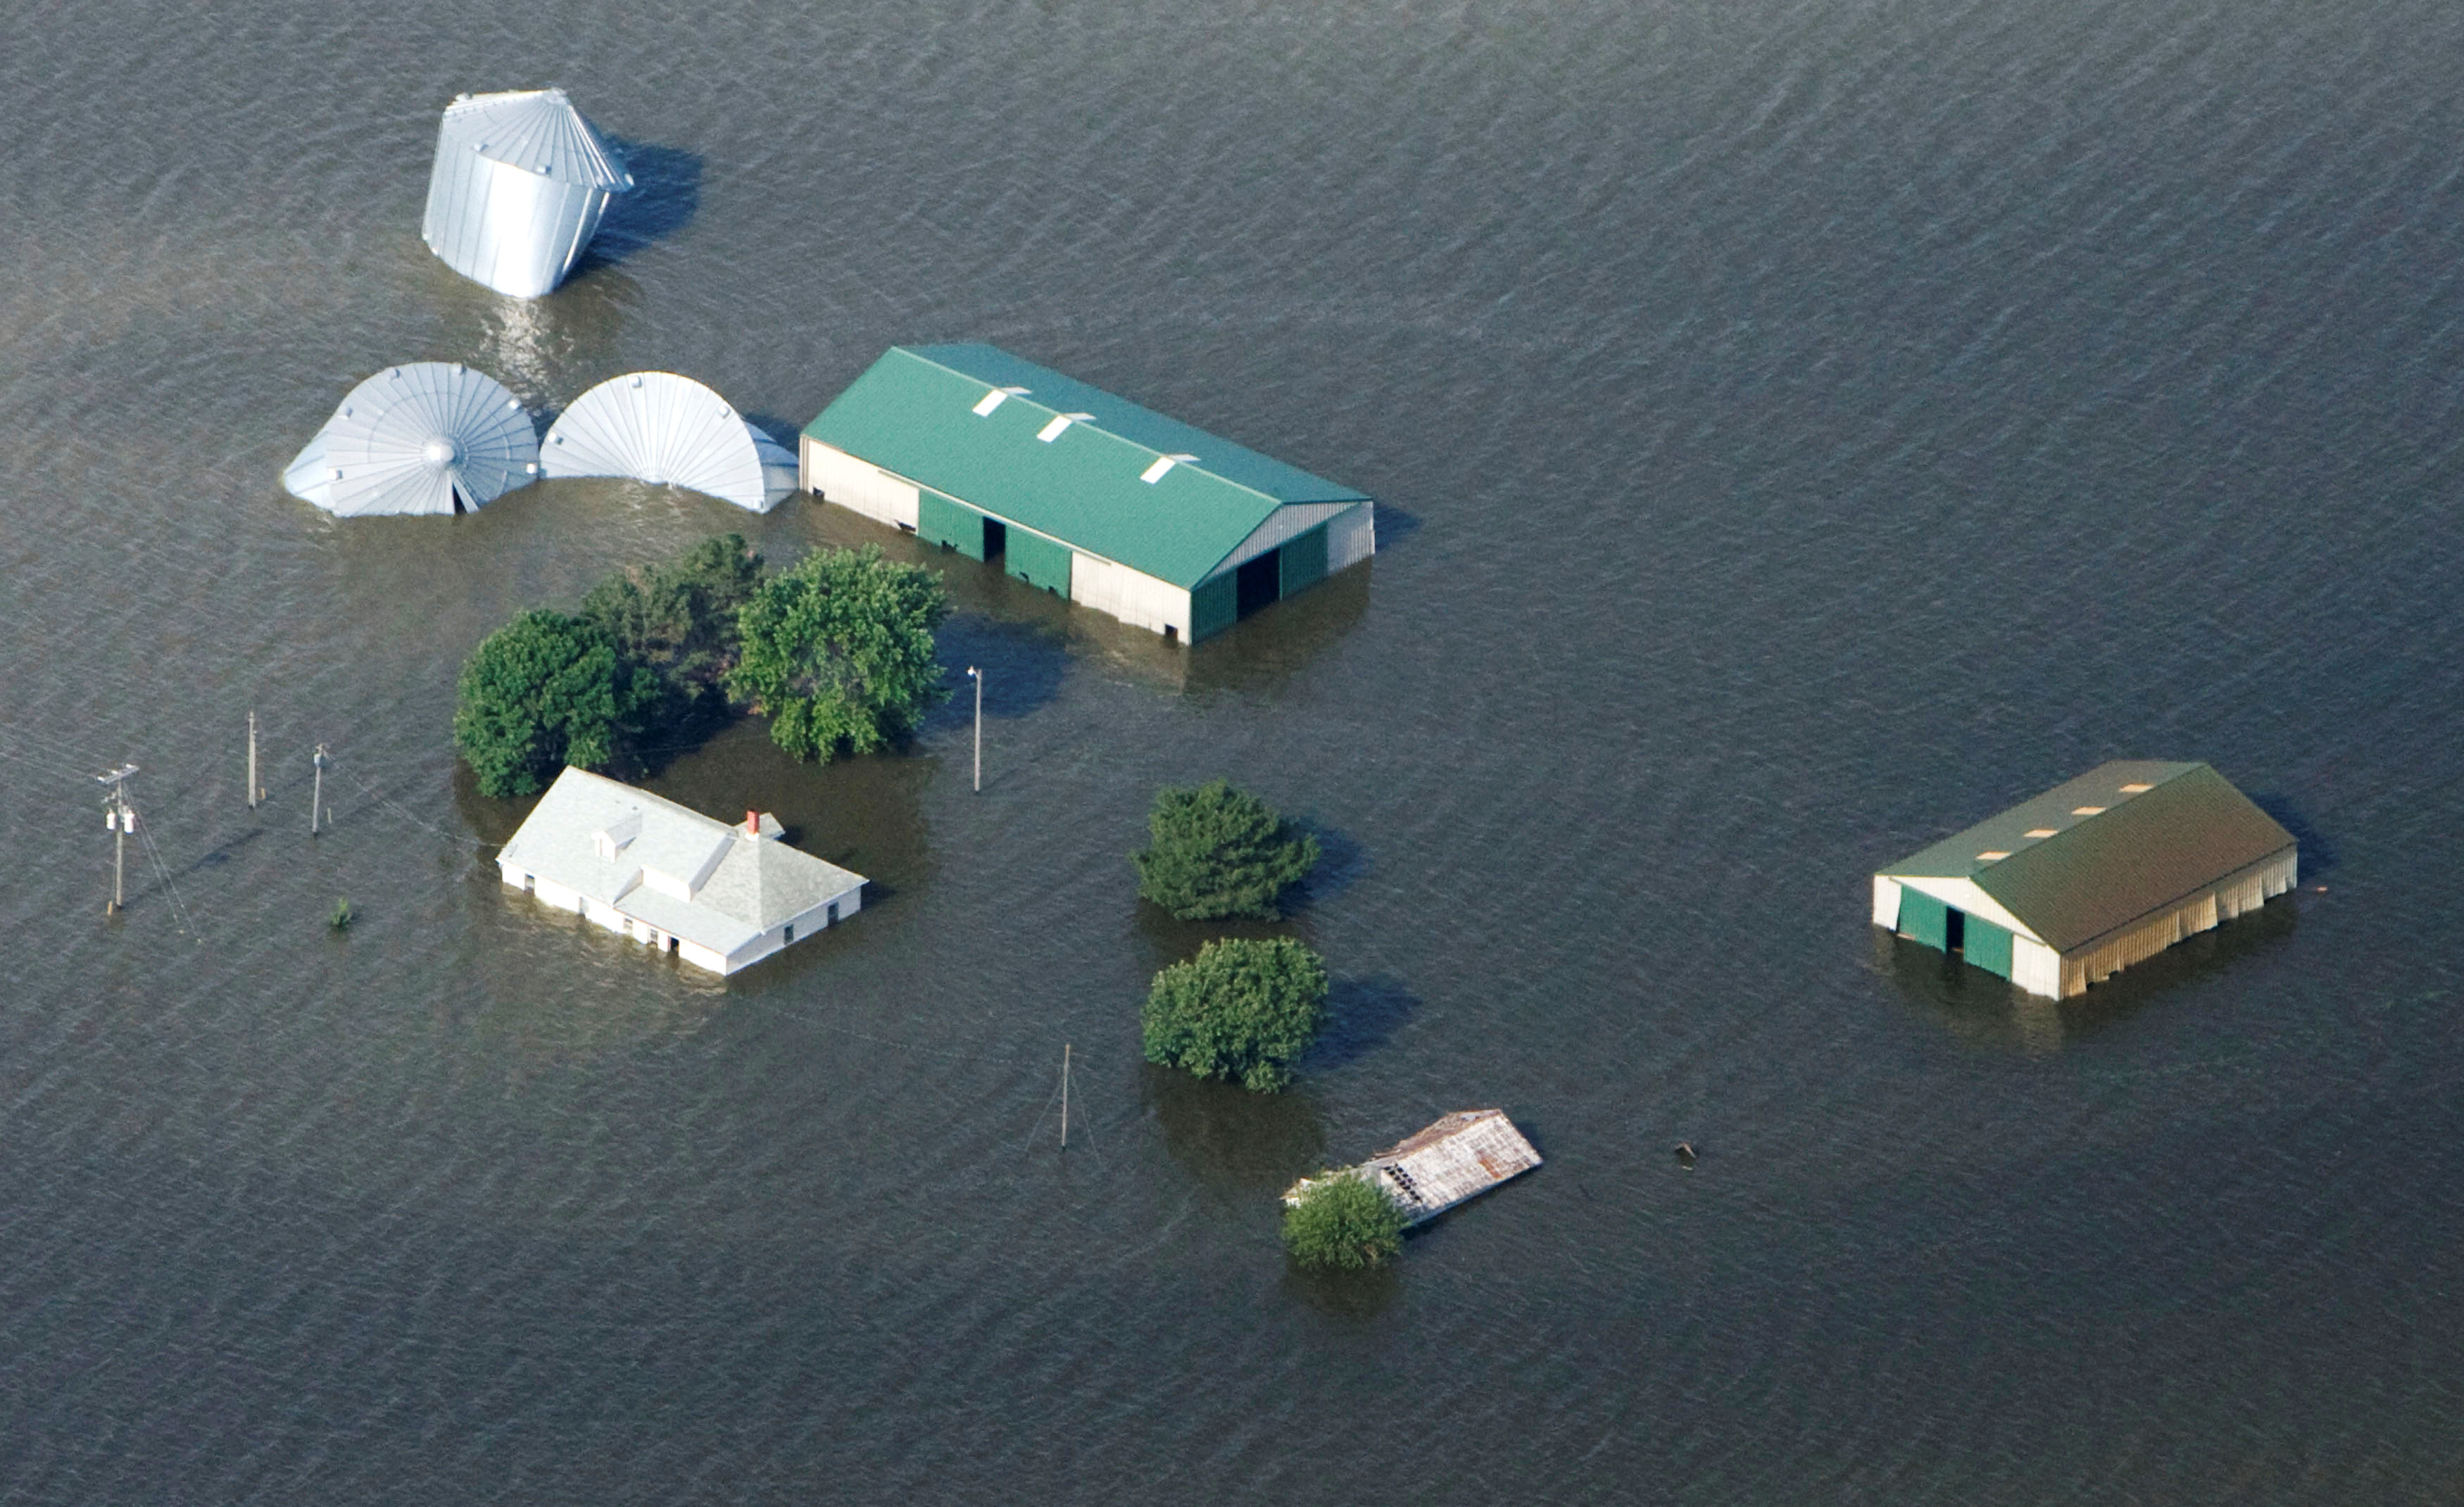 An aerial view of a farm north of Council Bluffs, Iowa, submerged in Missouri River flood waters June 24, 2011. The Missouri River, swollen by heavy rains and melting snow, has been flooding areas from Montana through Missouri.  REUTERS/Lane Hickenbottom (UNITED STATES - Tags: ENVIRONMENT DISASTER)/File Photo